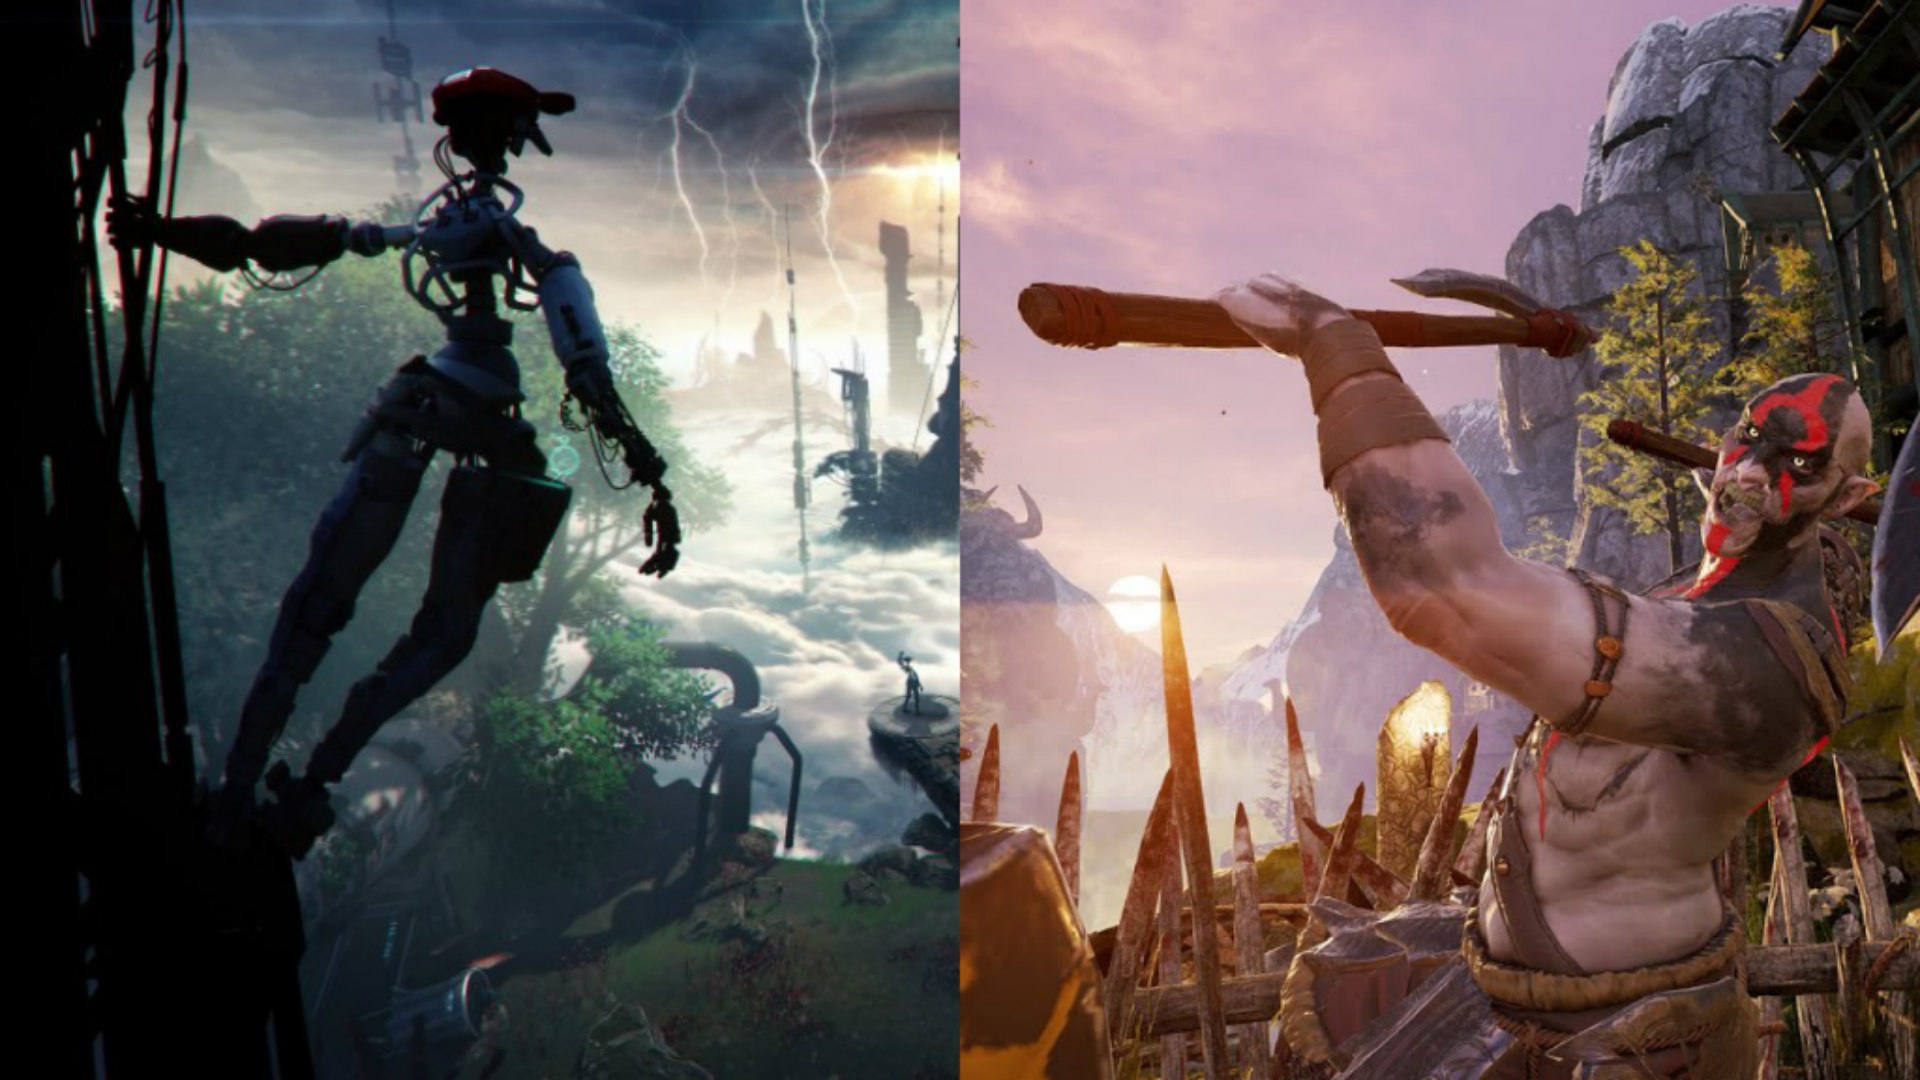 Rift Exclusives 'Asgard's Wrath' & 'Stormland' Get October & November Release Dates – Road to VR